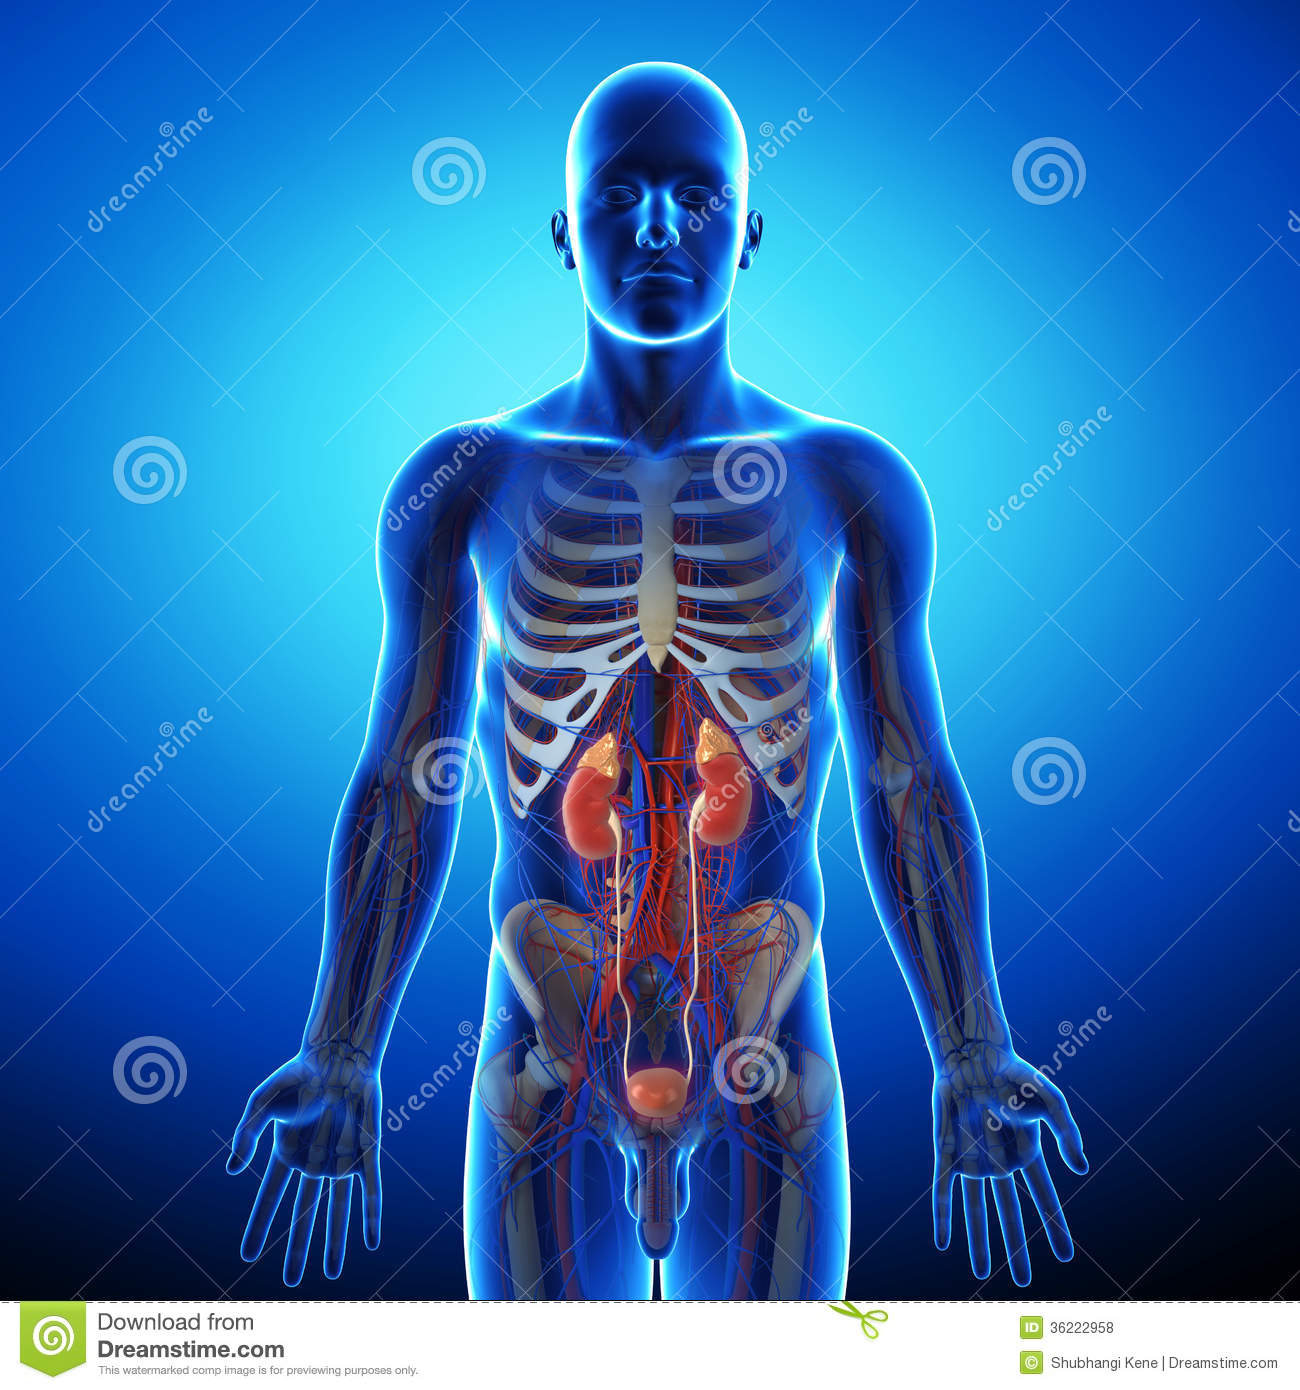 Kidney With Human Urinary System Royalty Free Stock Photos